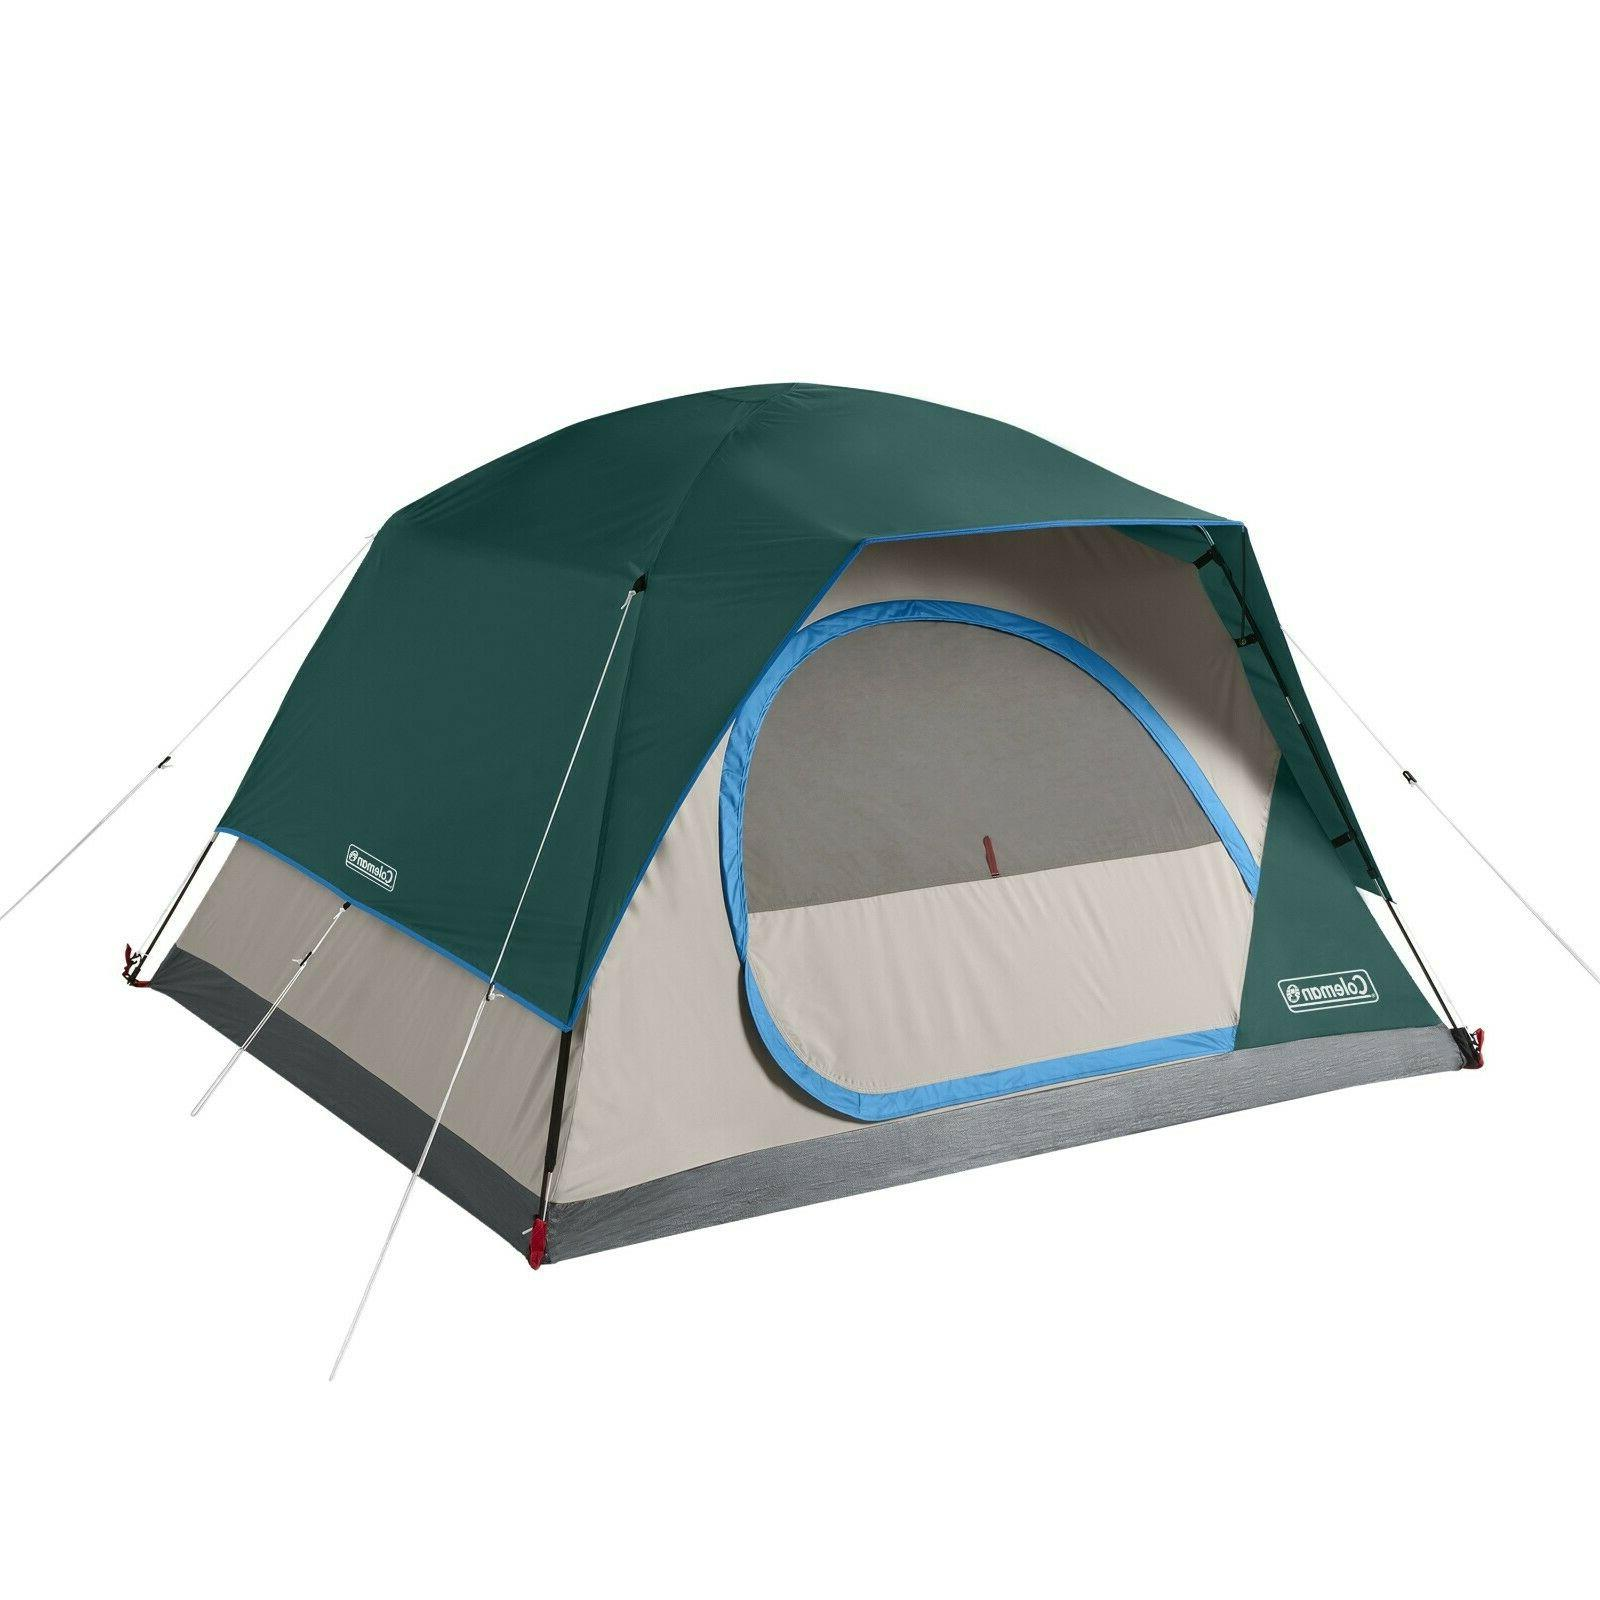 Coleman Skydome Camping 4-Person Tent - Green